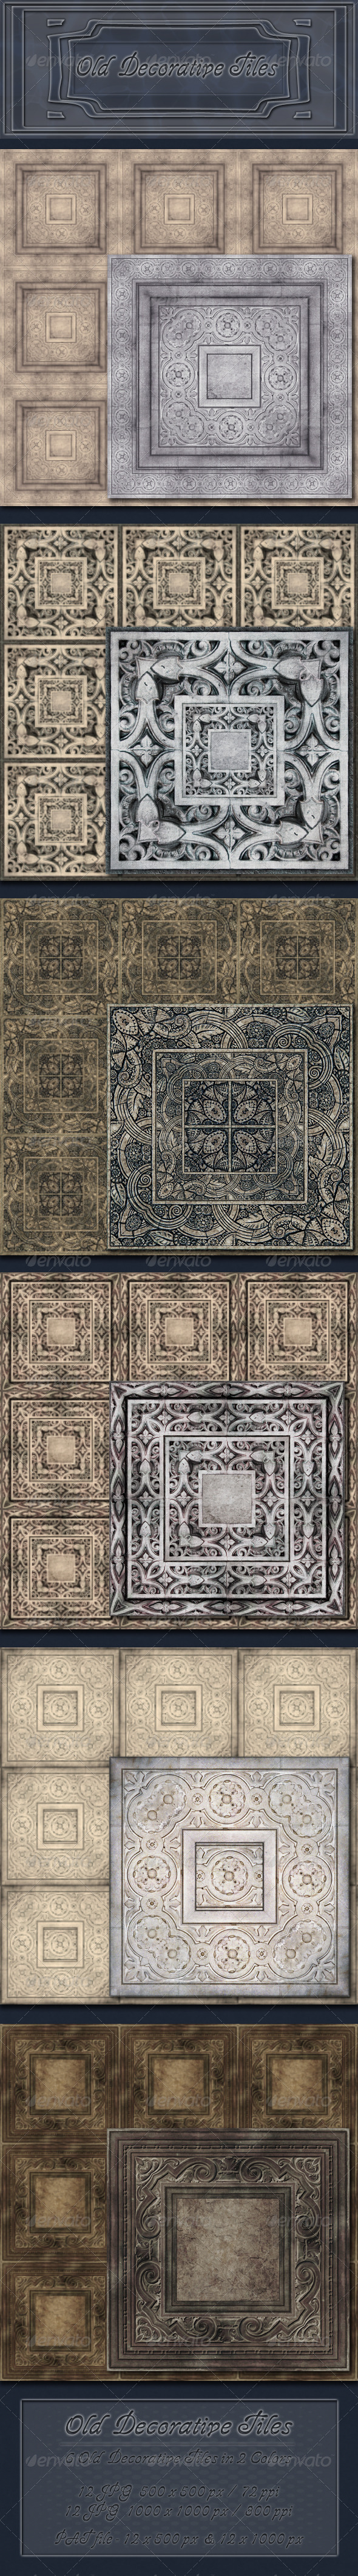 Old Decorative Tiles - Miscellaneous Textures / Fills / Patterns